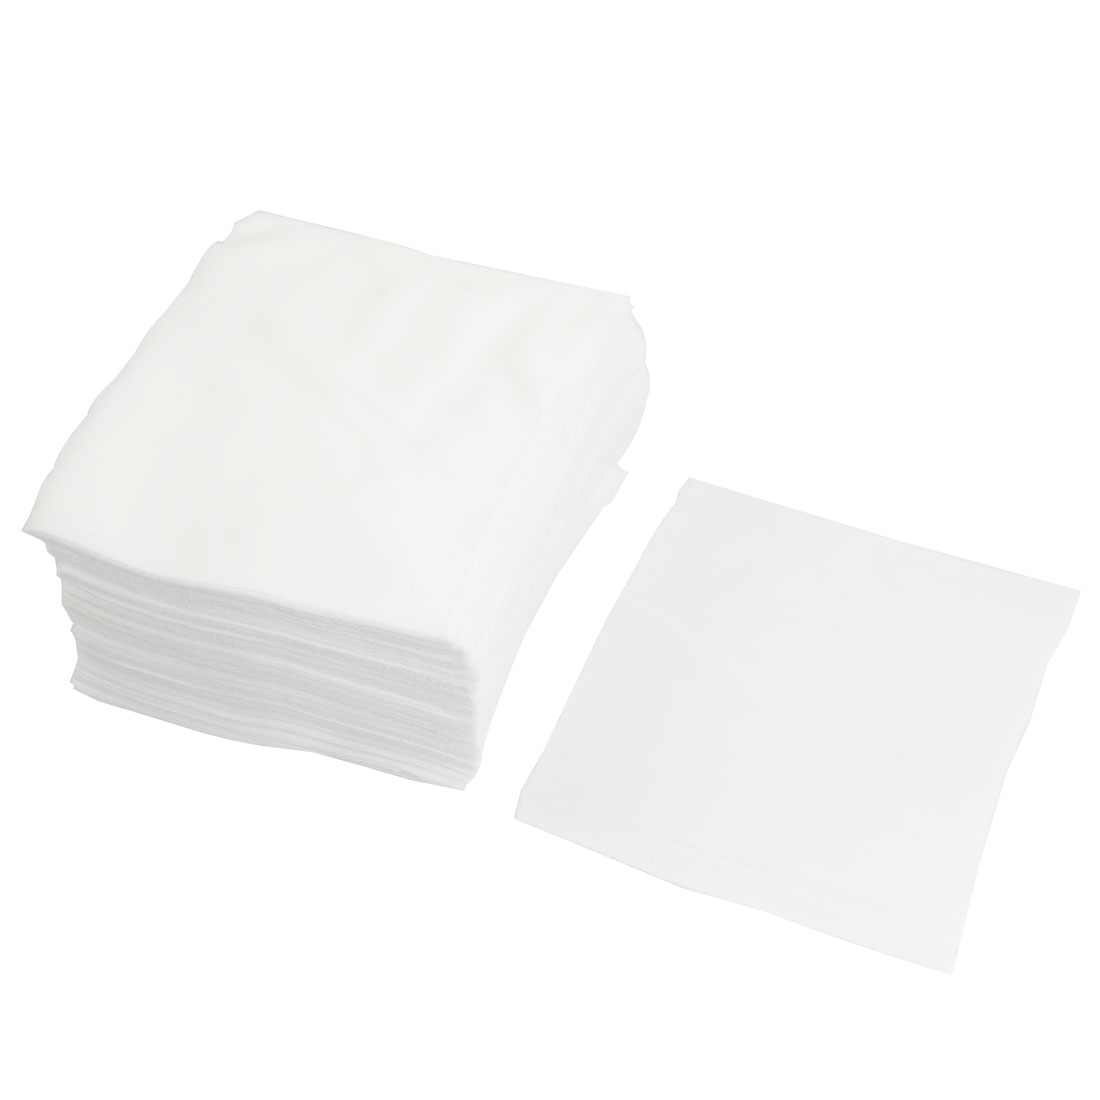 "150 Pcs 6"" x 6"" White Dustless Cleanroom Wiper Wiping Cloth"